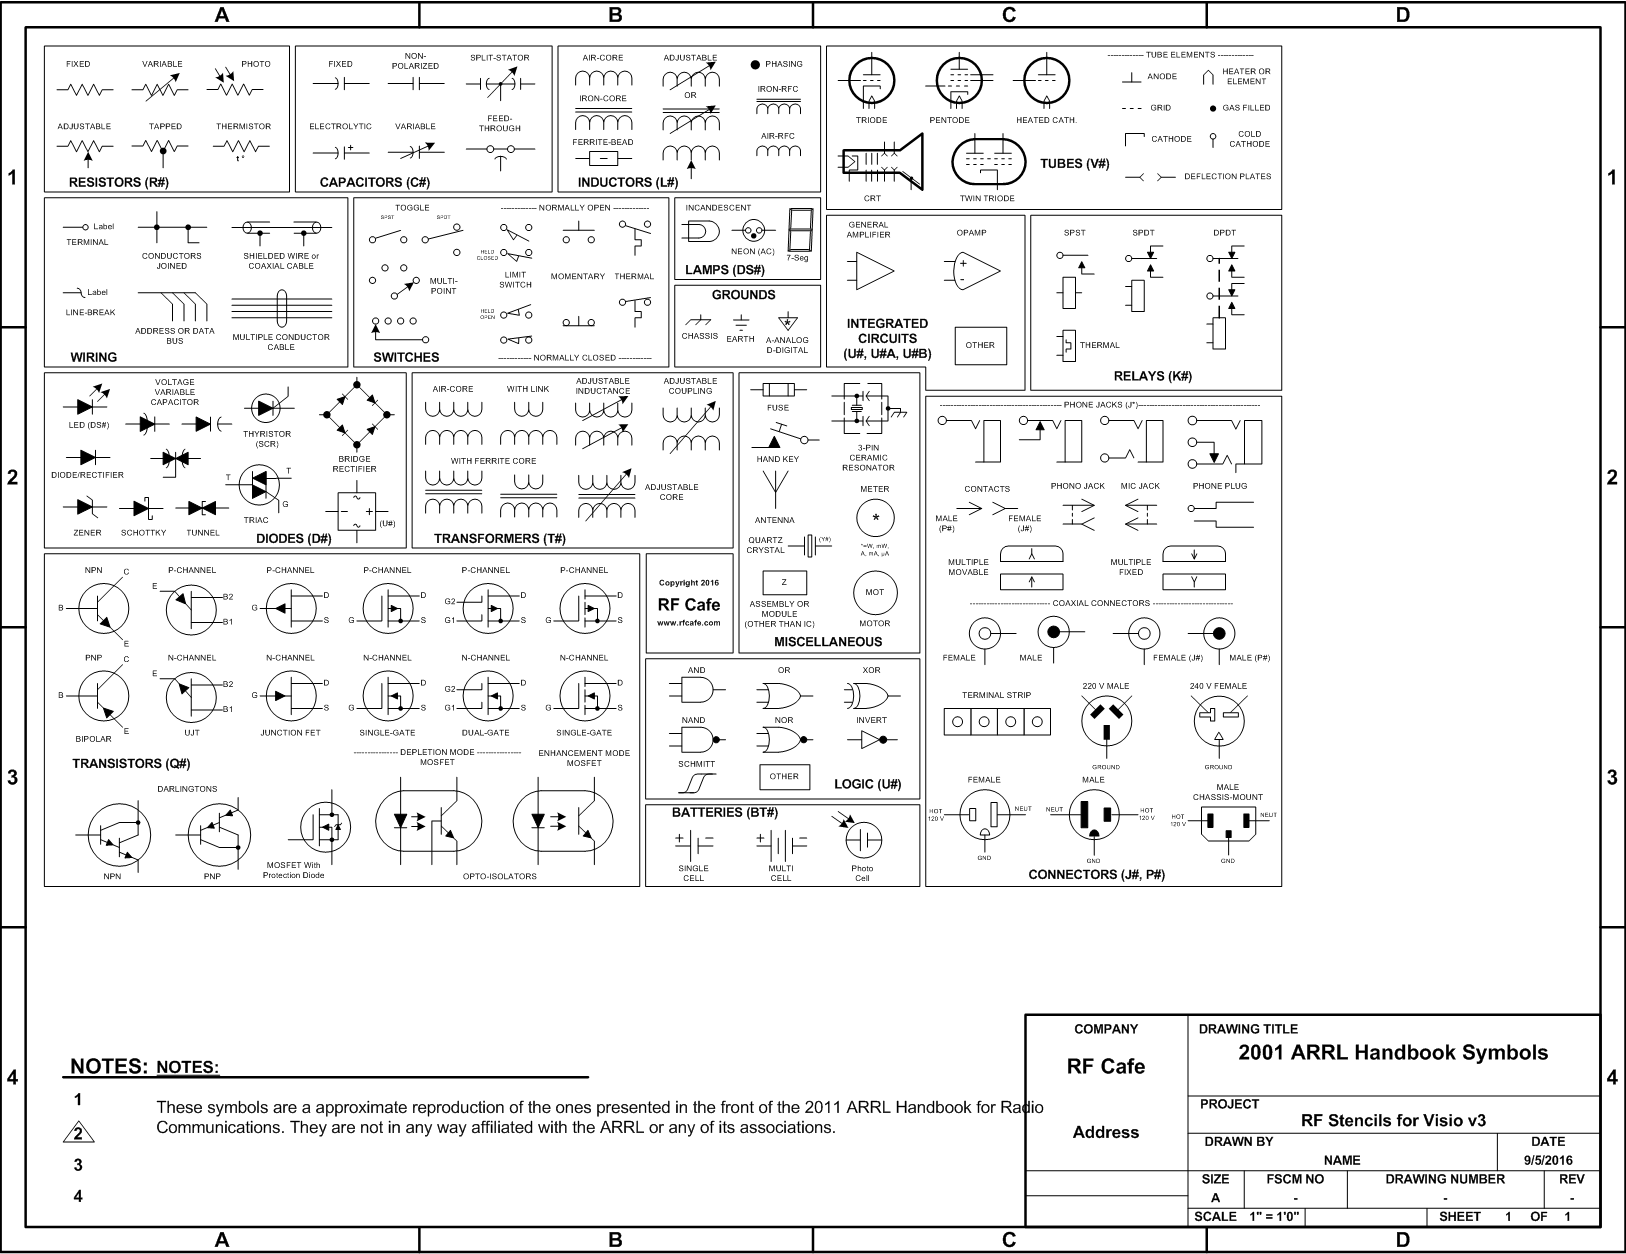 Rf Microwave Wireless Analog Block Diagrams Stencils Shapes For Component Circuit Drawing Program Photo Schematic Software Visio Symbols From The 2011 Arrl Handbook Cafe